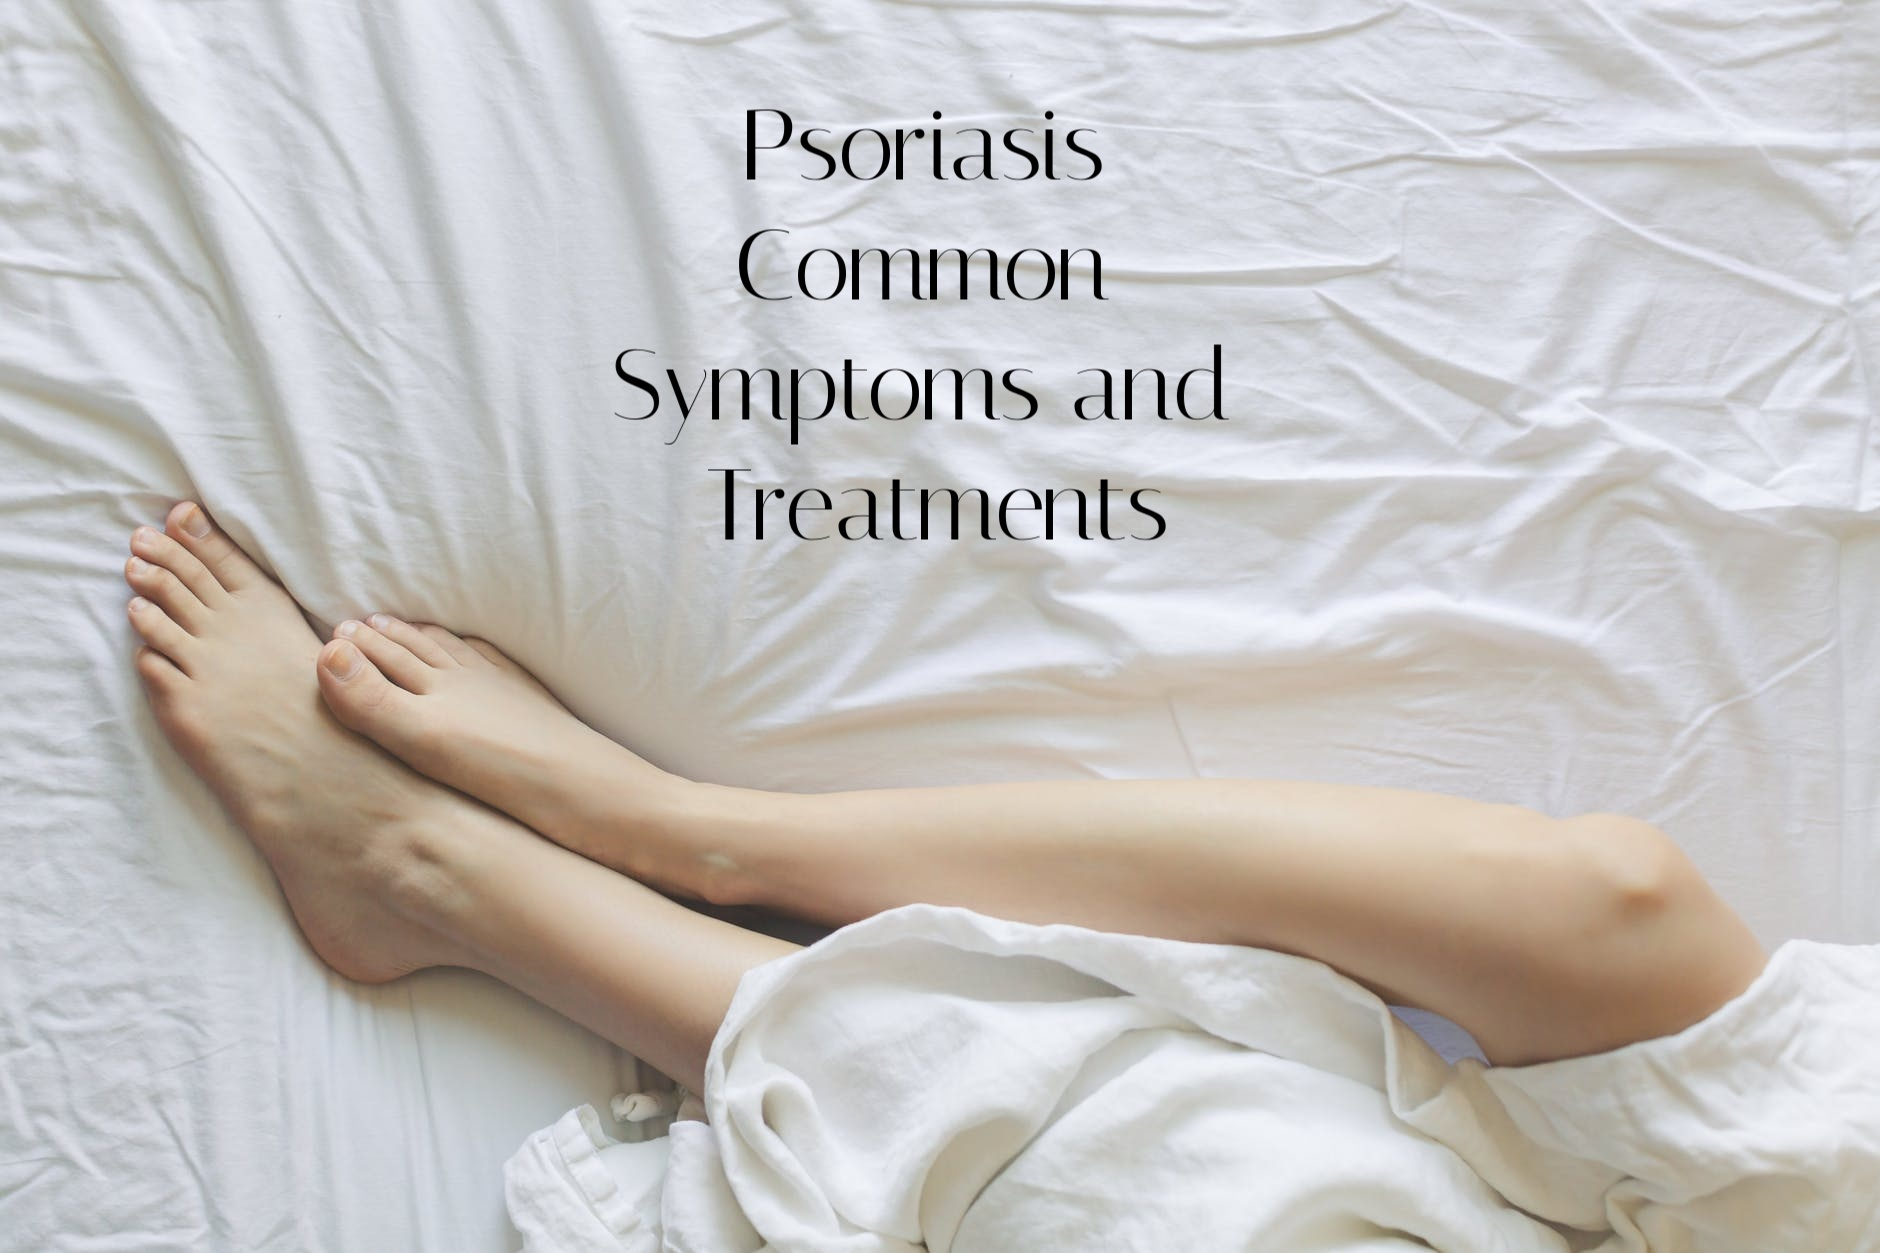 Psoriasis Common Symptoms and Treatments